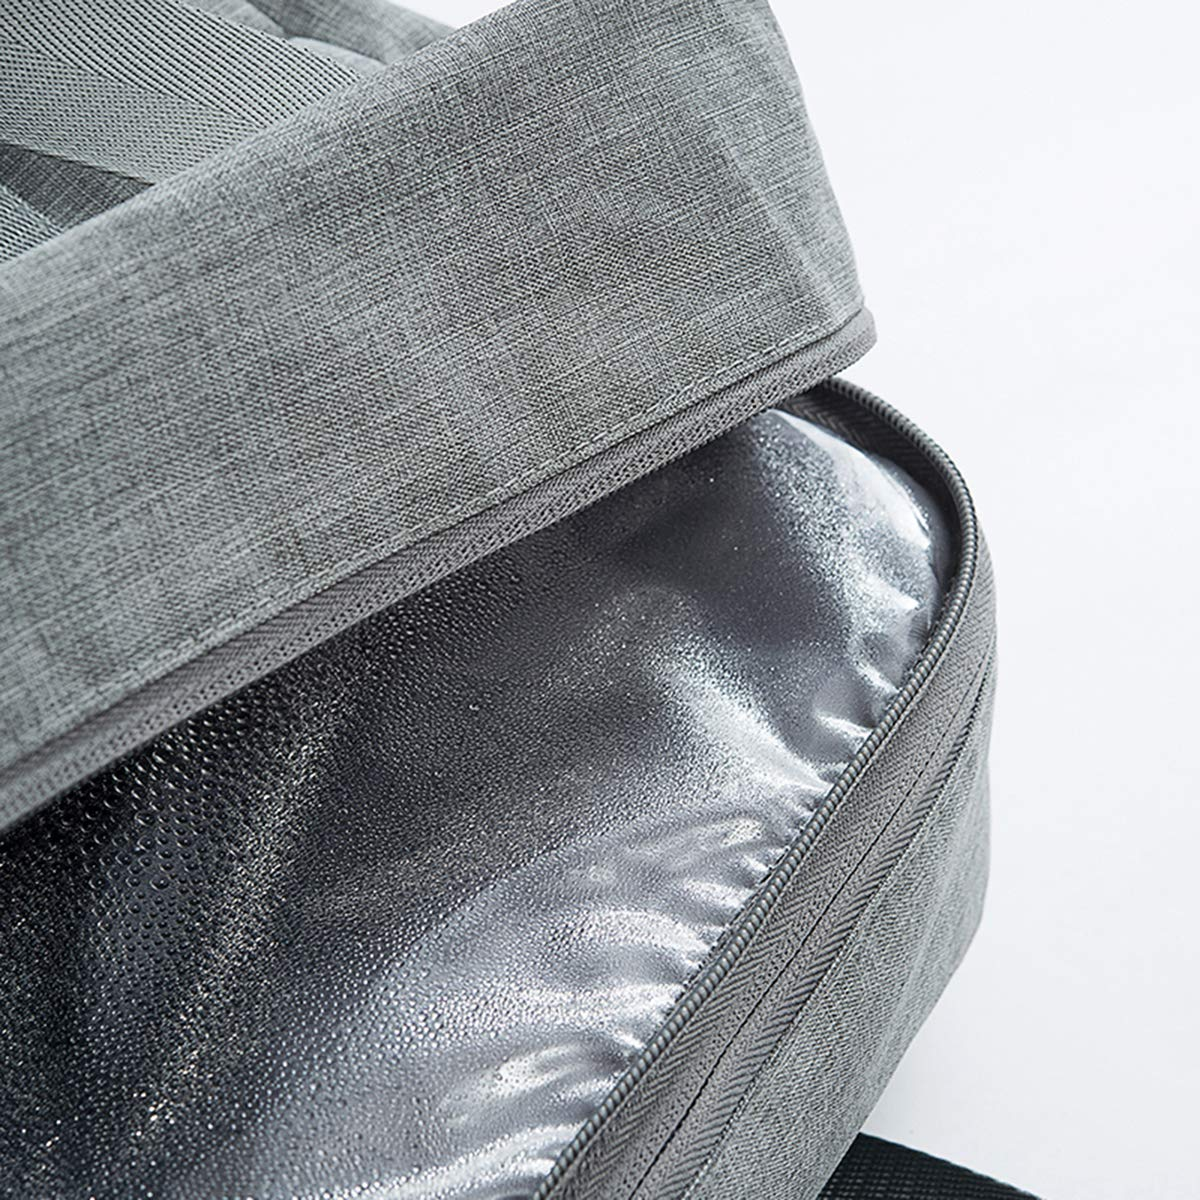 Vaincre Swim Bag, Dry Wet Area & Shoe Compartment Separated Waterproof Duffle Bag for Gym, Pool, Beach by Vaincre (Image #3)